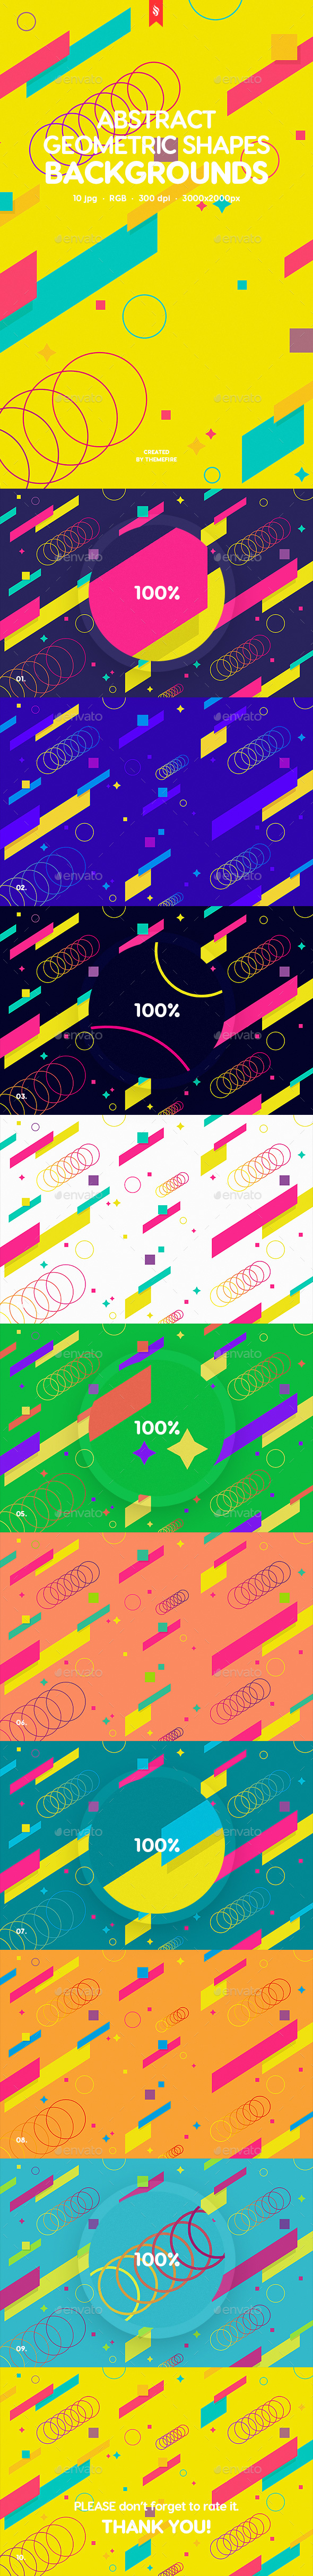 Abstract Geometric Shapes Backgrounds - Patterns Backgrounds